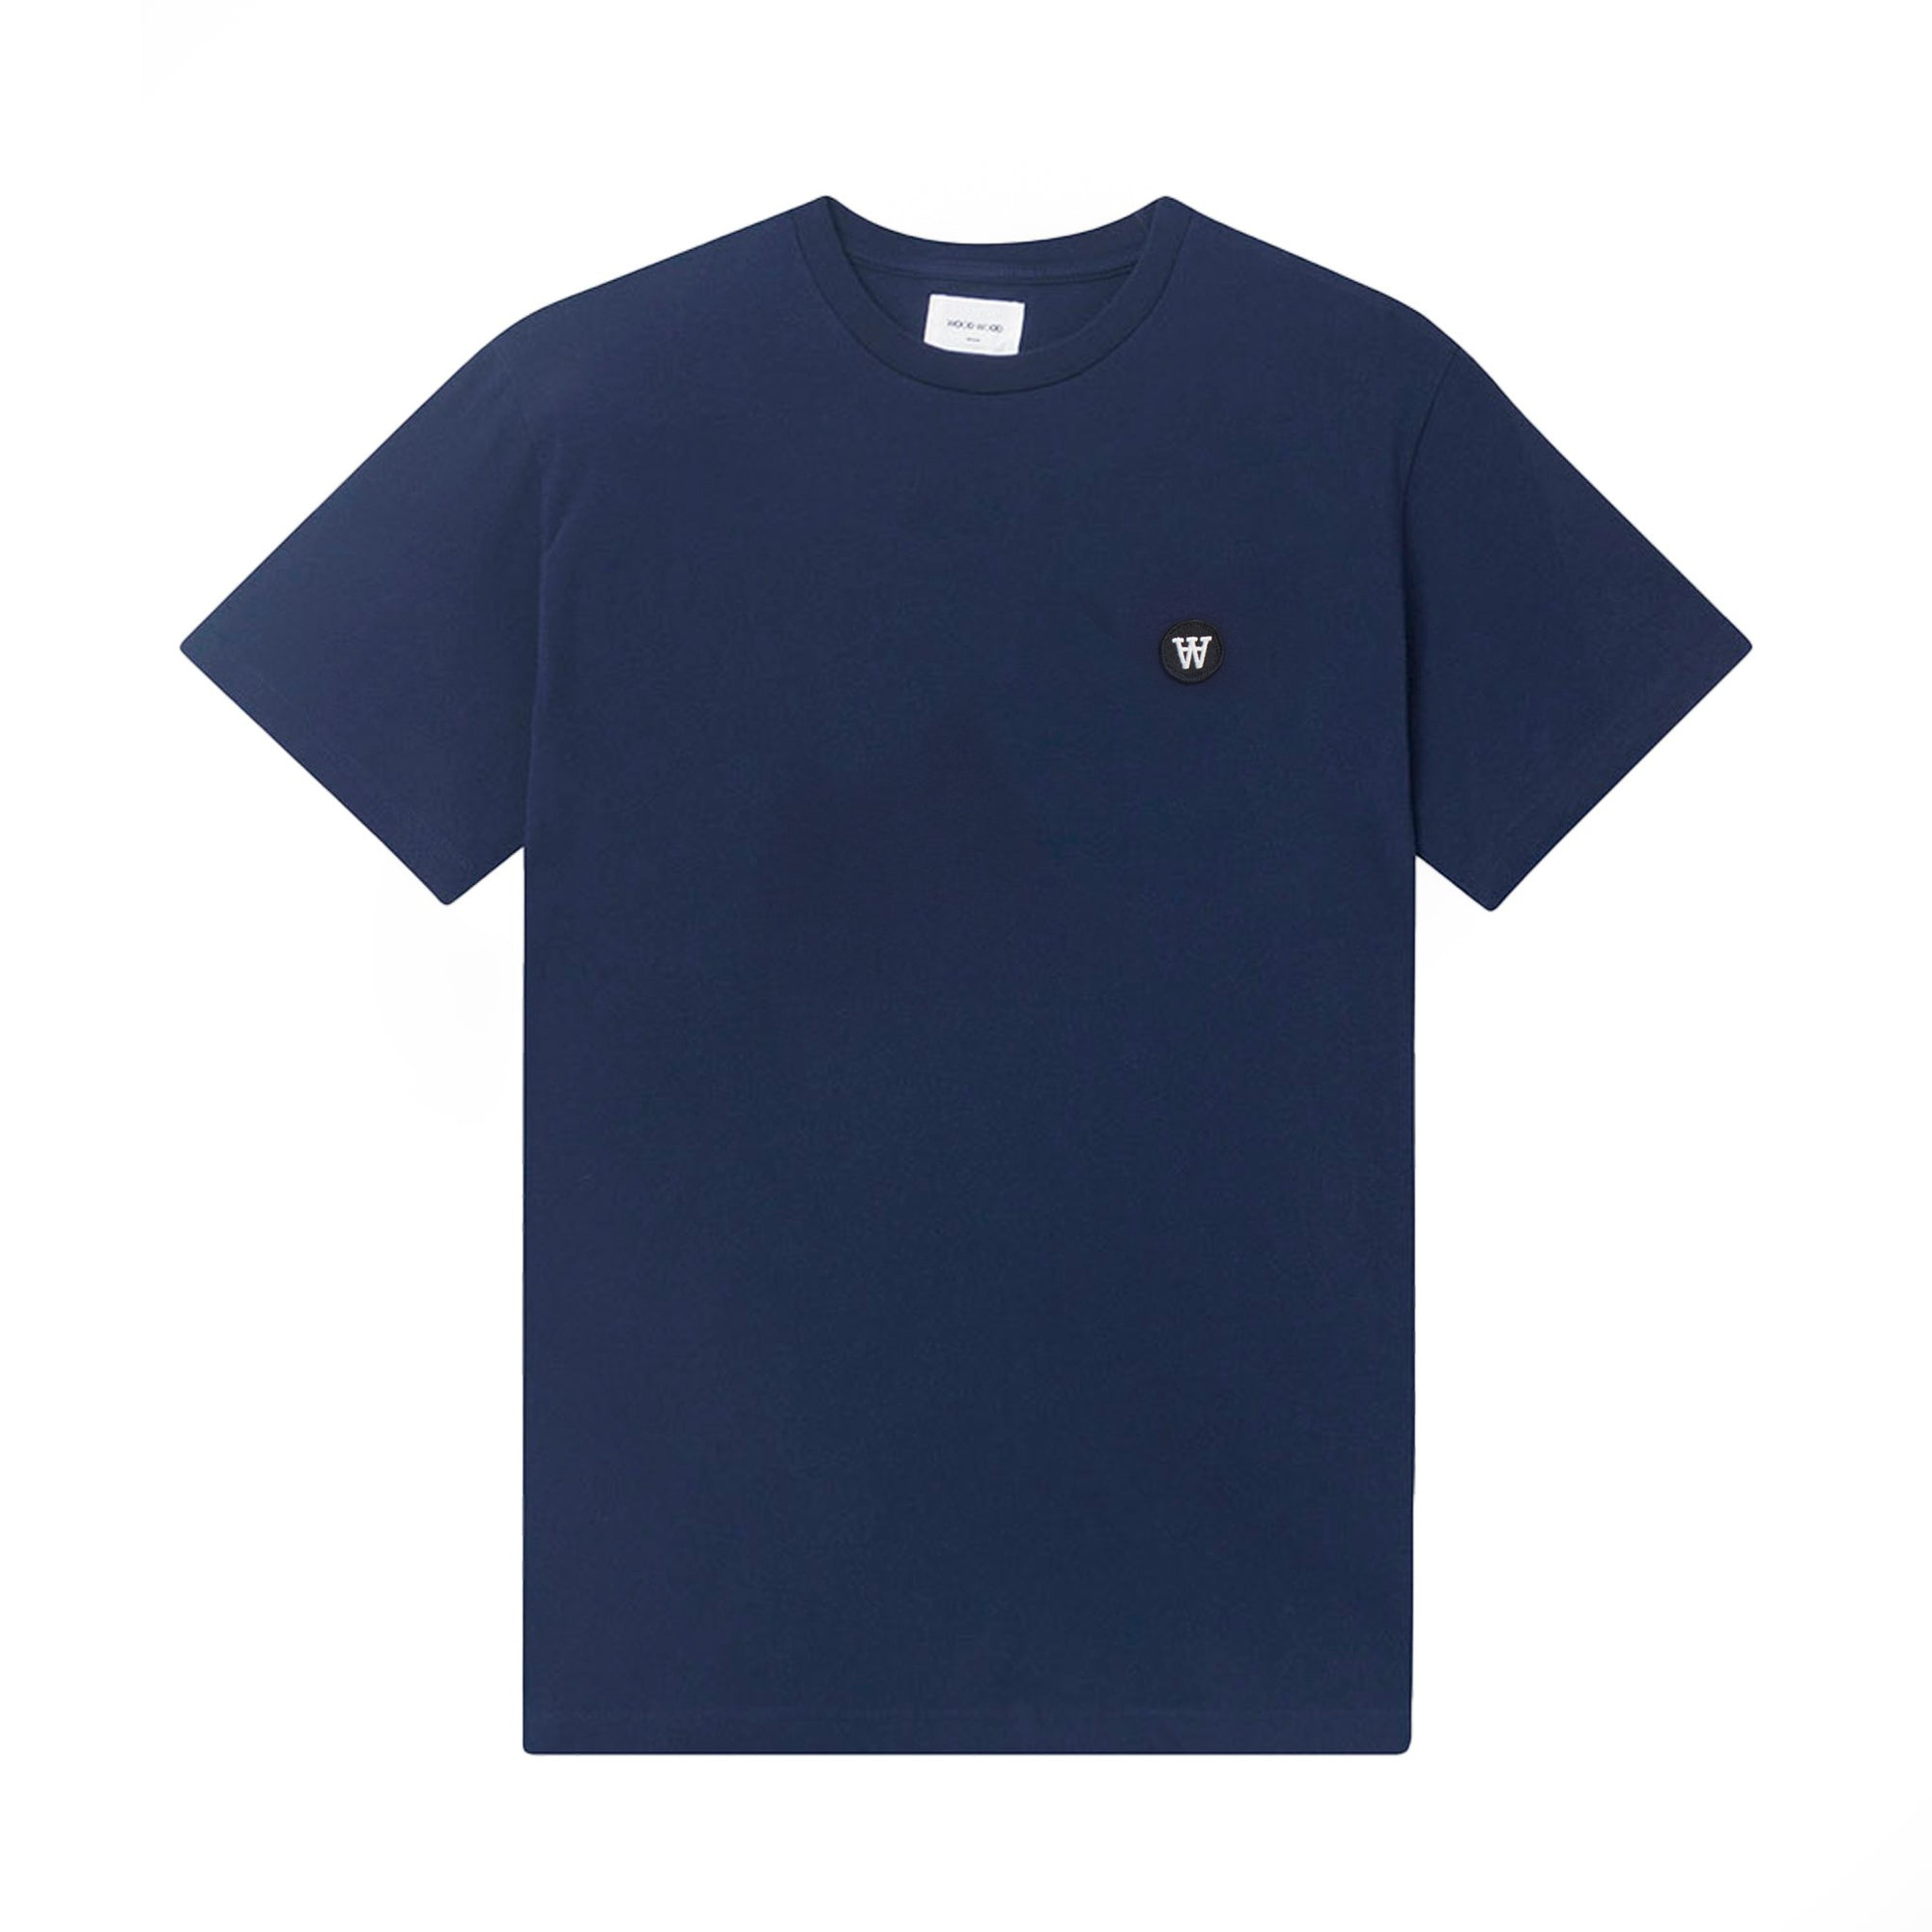 Wood Wood Ace T-Shirt: Navy - The Union Project